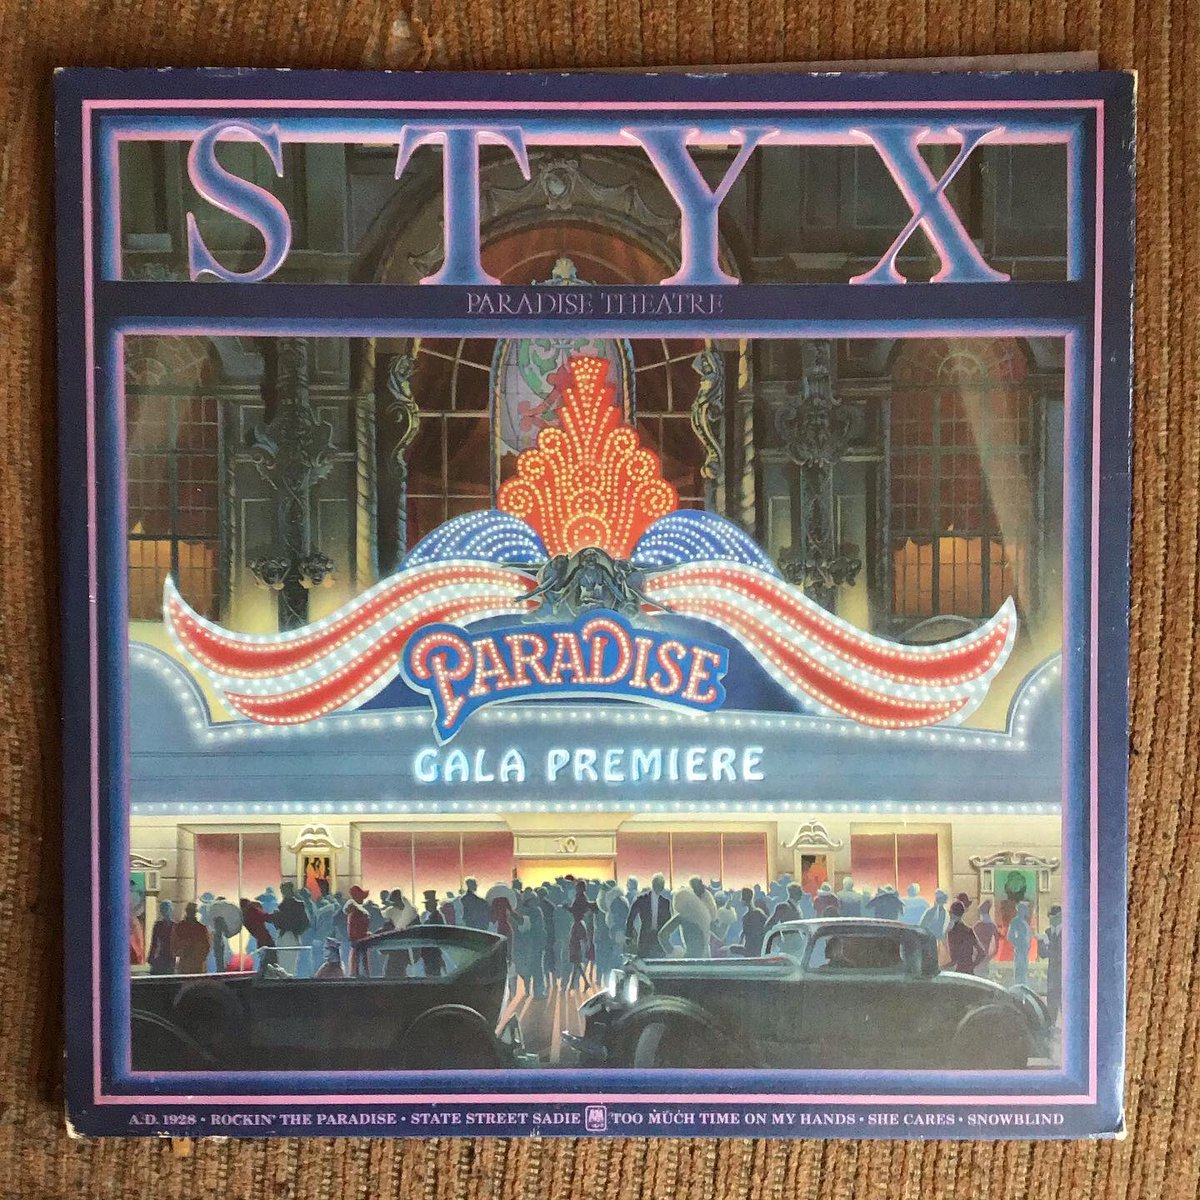 #OnThisDay January 19, 1981 @STYXtheBand released their tenth studio album #ParadiseTheater charted at #1 on the @billboardcharts  #8 on the @officialcharts.  The album is certified 3x platinum and includes the single #TheBestofTimes #TooMuchTimeonMyHands.